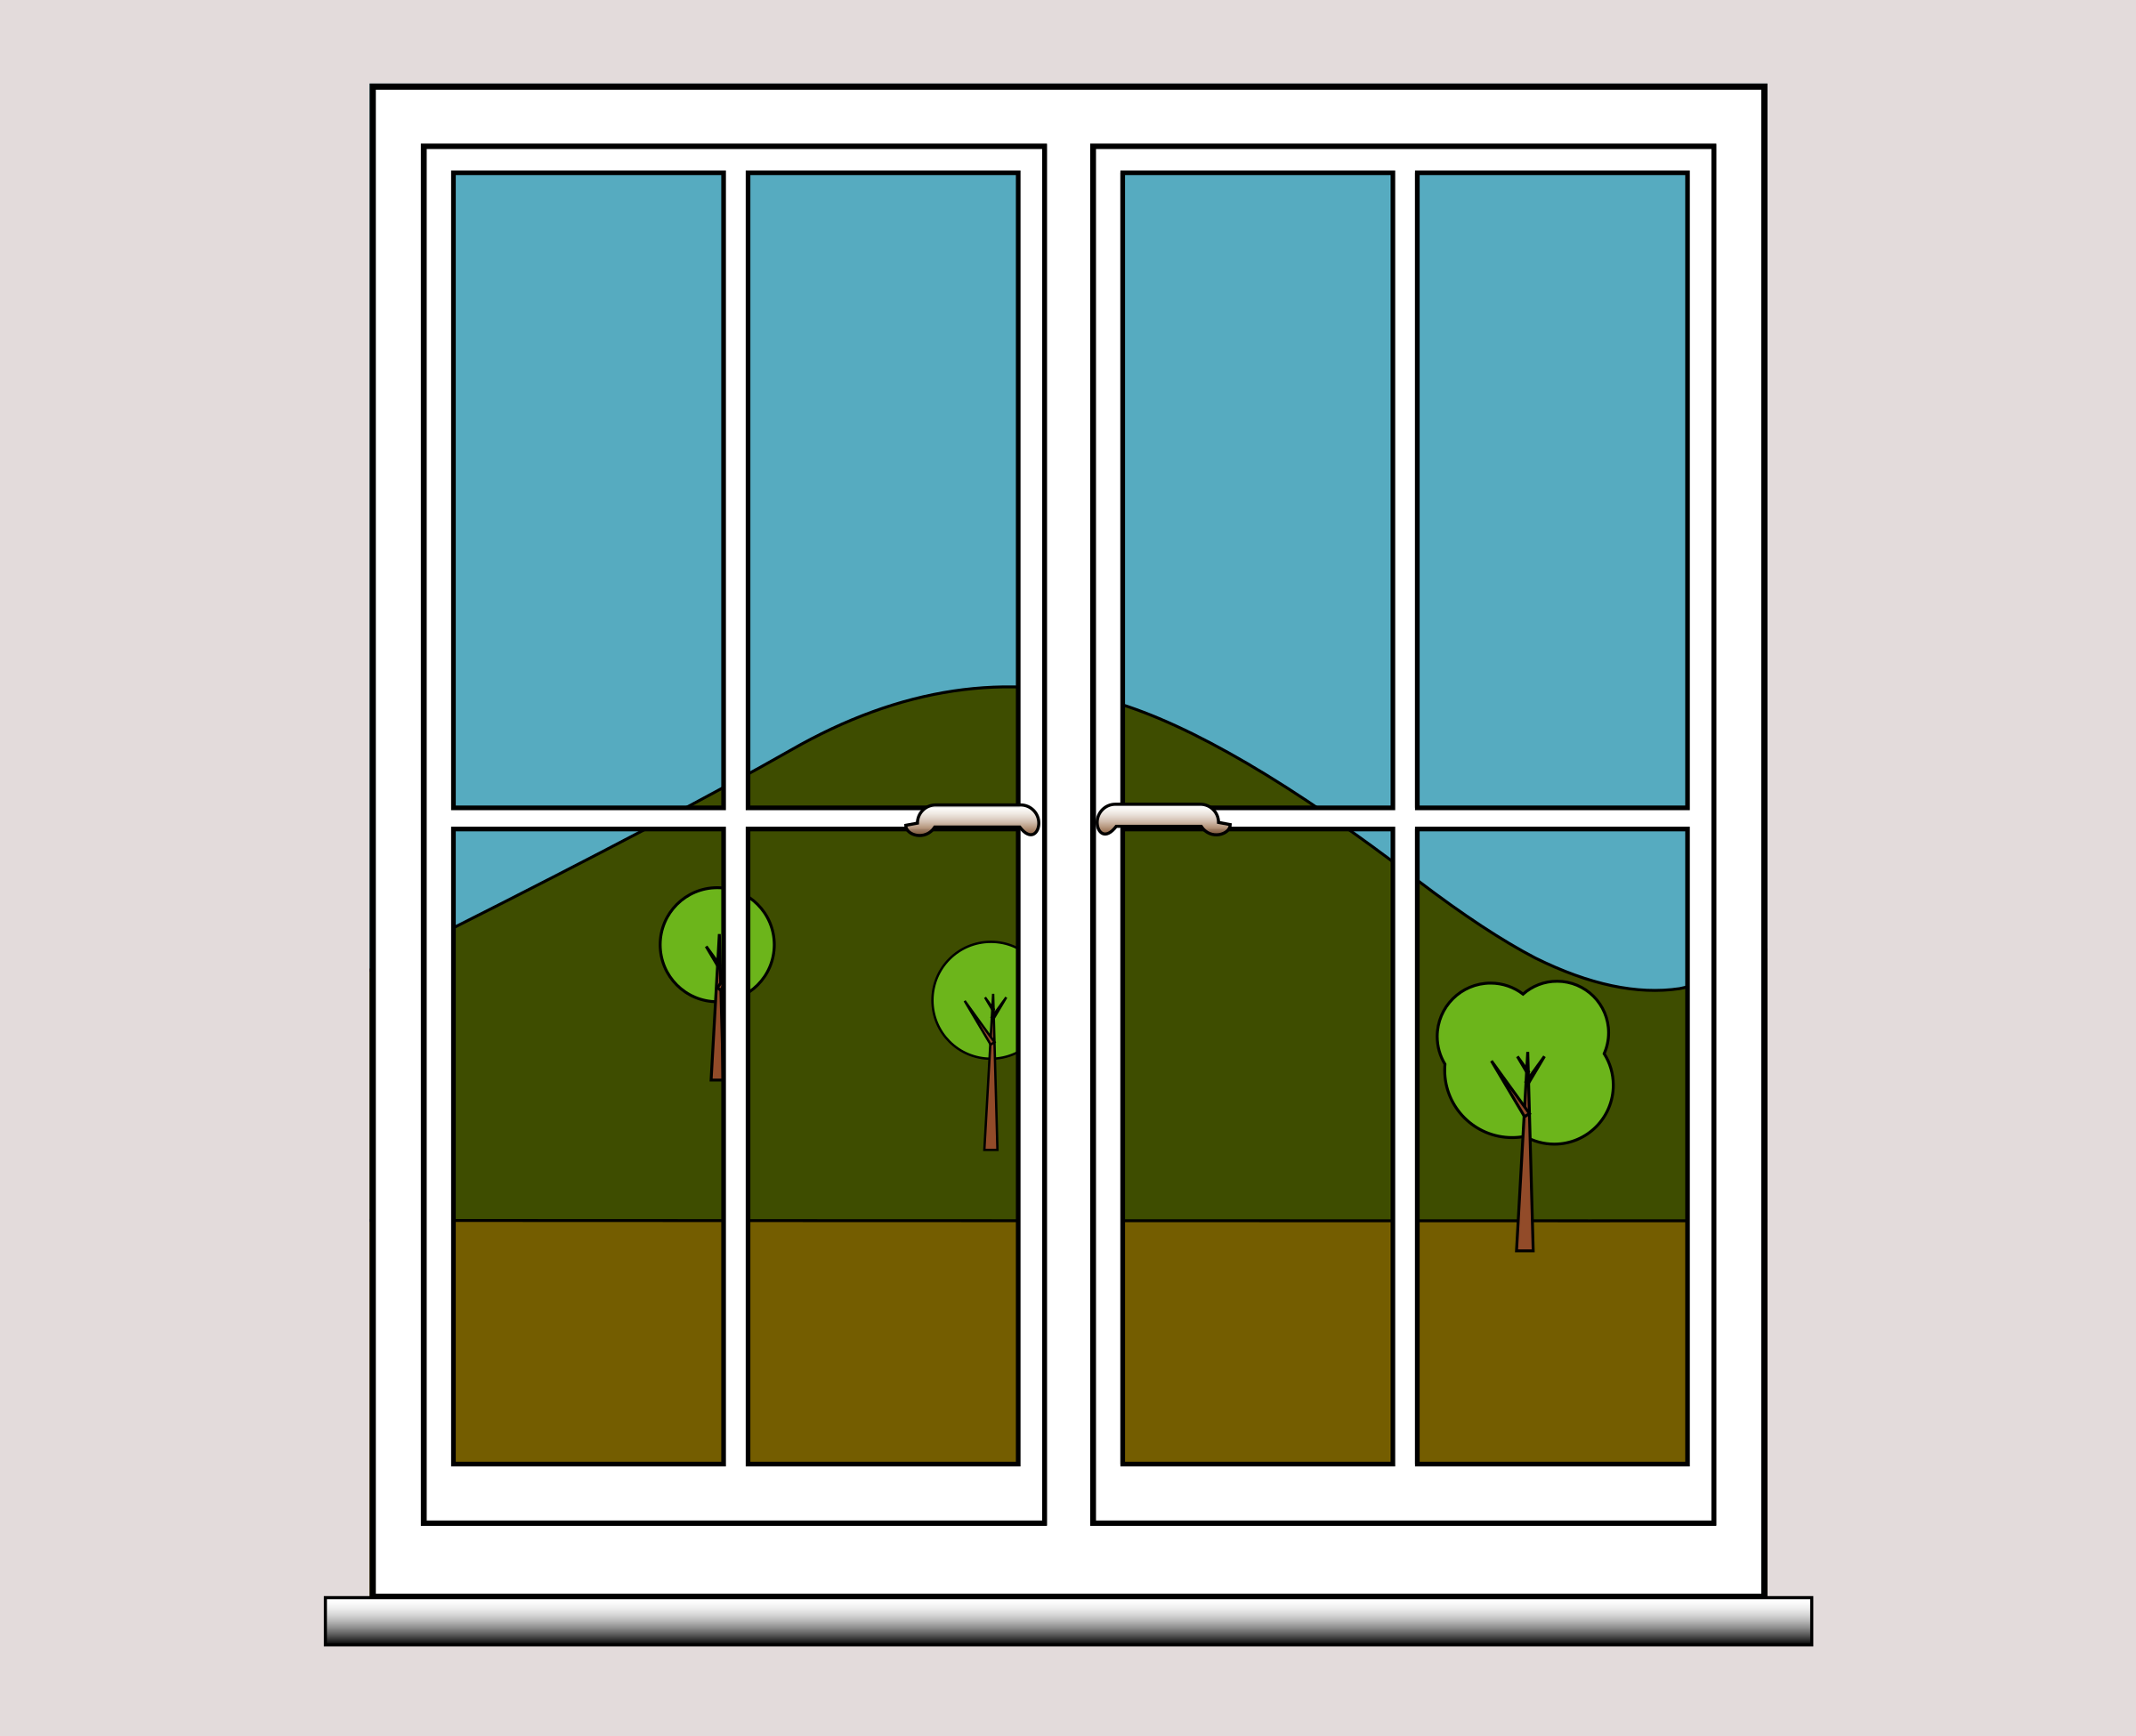 Application window clipart - Clipground for Outside Window Clipart  174mzq